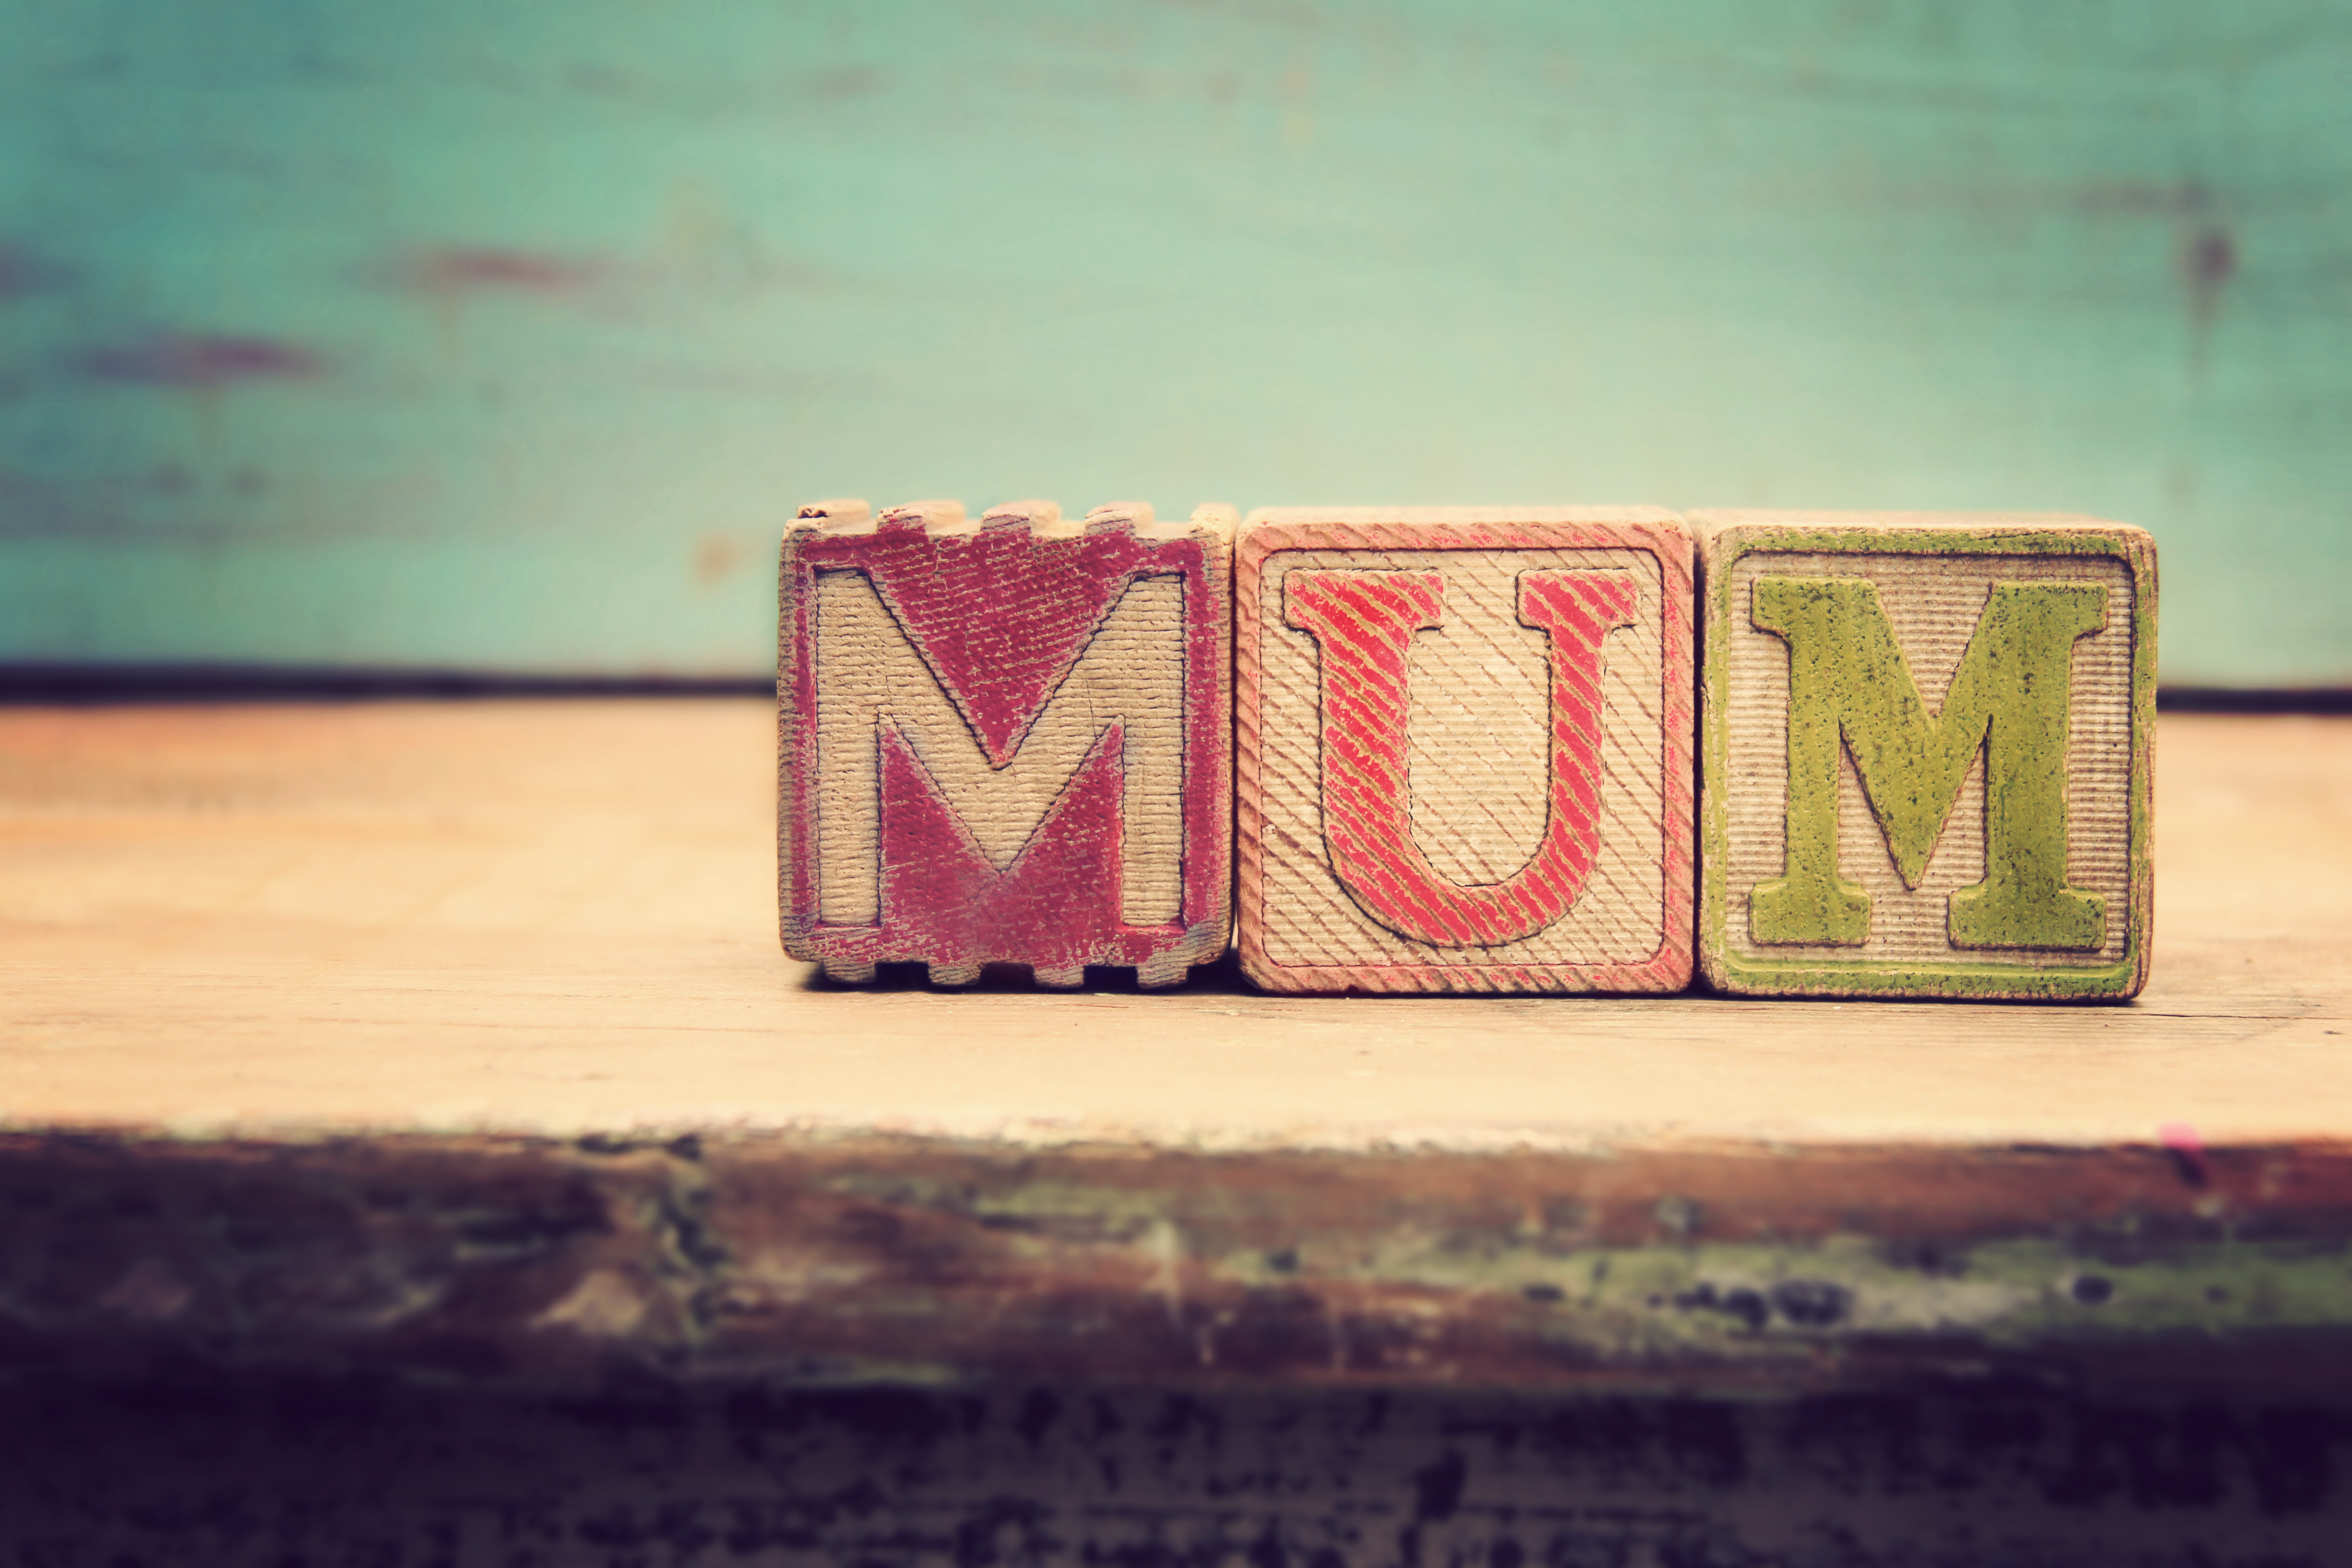 <p>When you're a busy mum, your nerves can be spread as thin as the butter on your burnt toast.</p> <p>Some days it takes all your strength, and all your teeth gritting ability, to stay calm.</p> <p>In those moments when being the centre of a little person (or three's) world is too overwhelming — sometimes all it takes is a smile from your baby or a funny mummy mantra to lift your spirits. Swipe through for some words of wisdom, just for mums ...</p> <p></p>